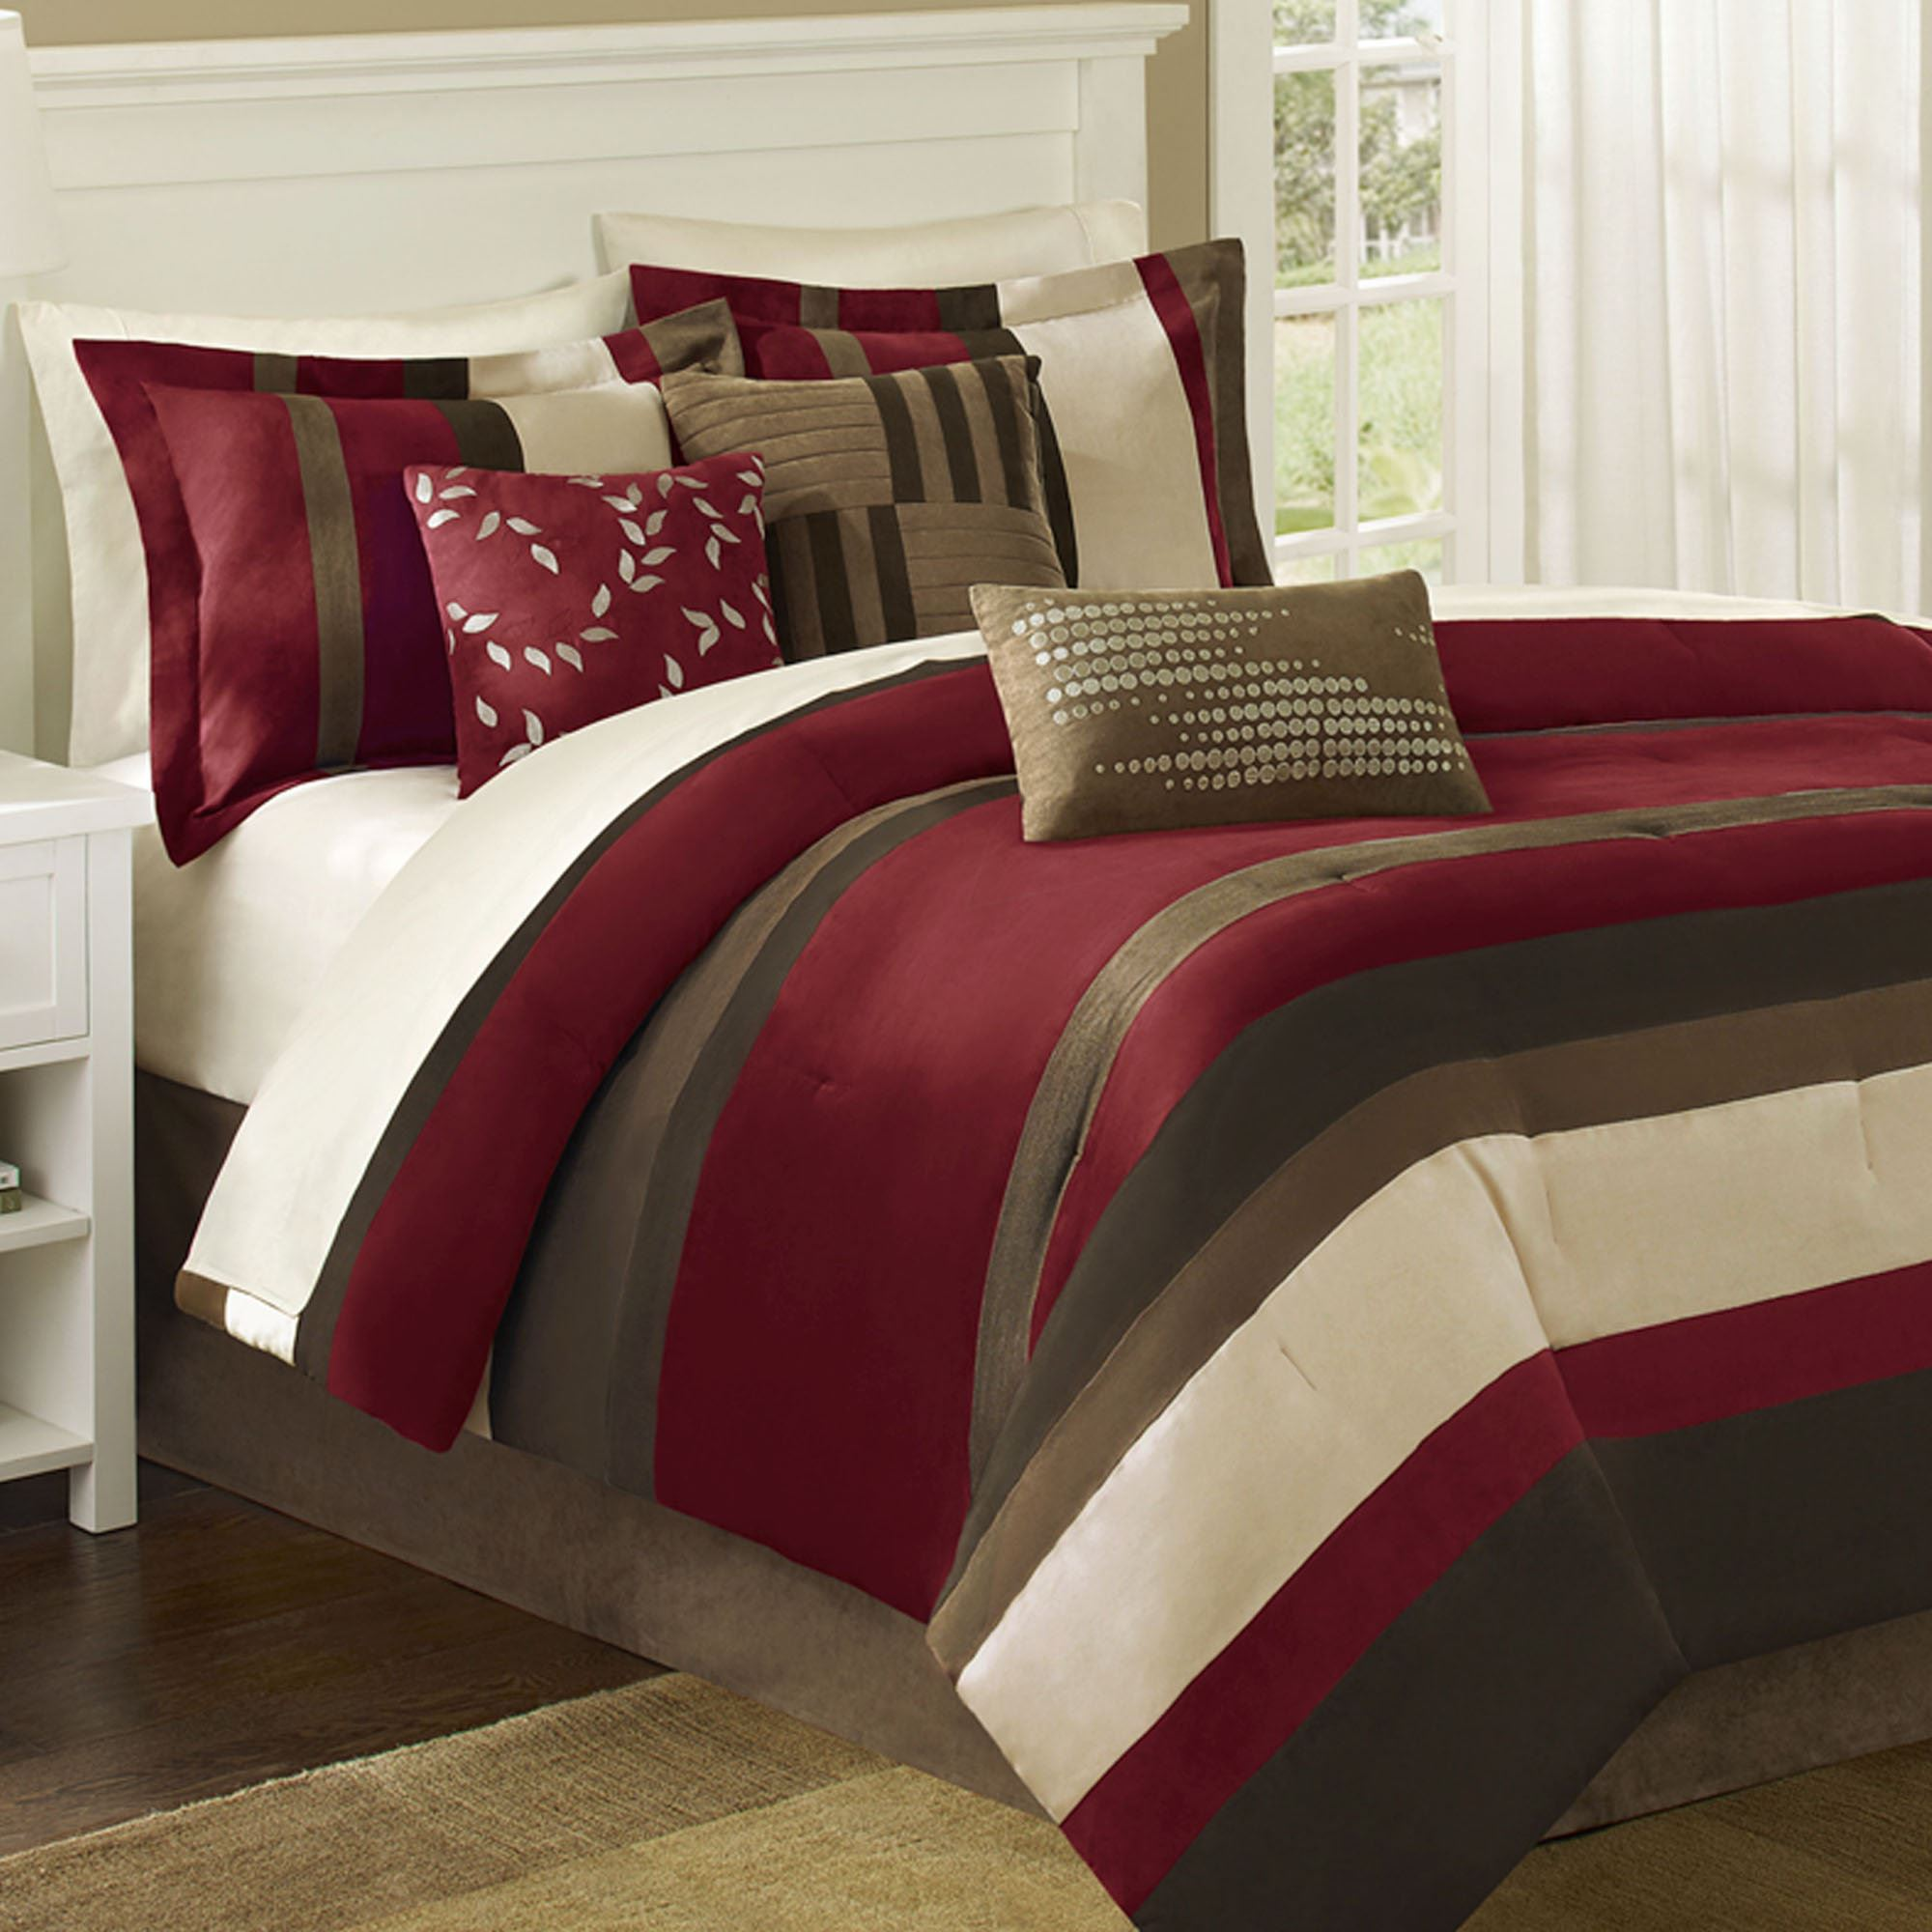 Boulder stripe 7 pc comforter bed set - Bedroom sheets and comforter sets ...